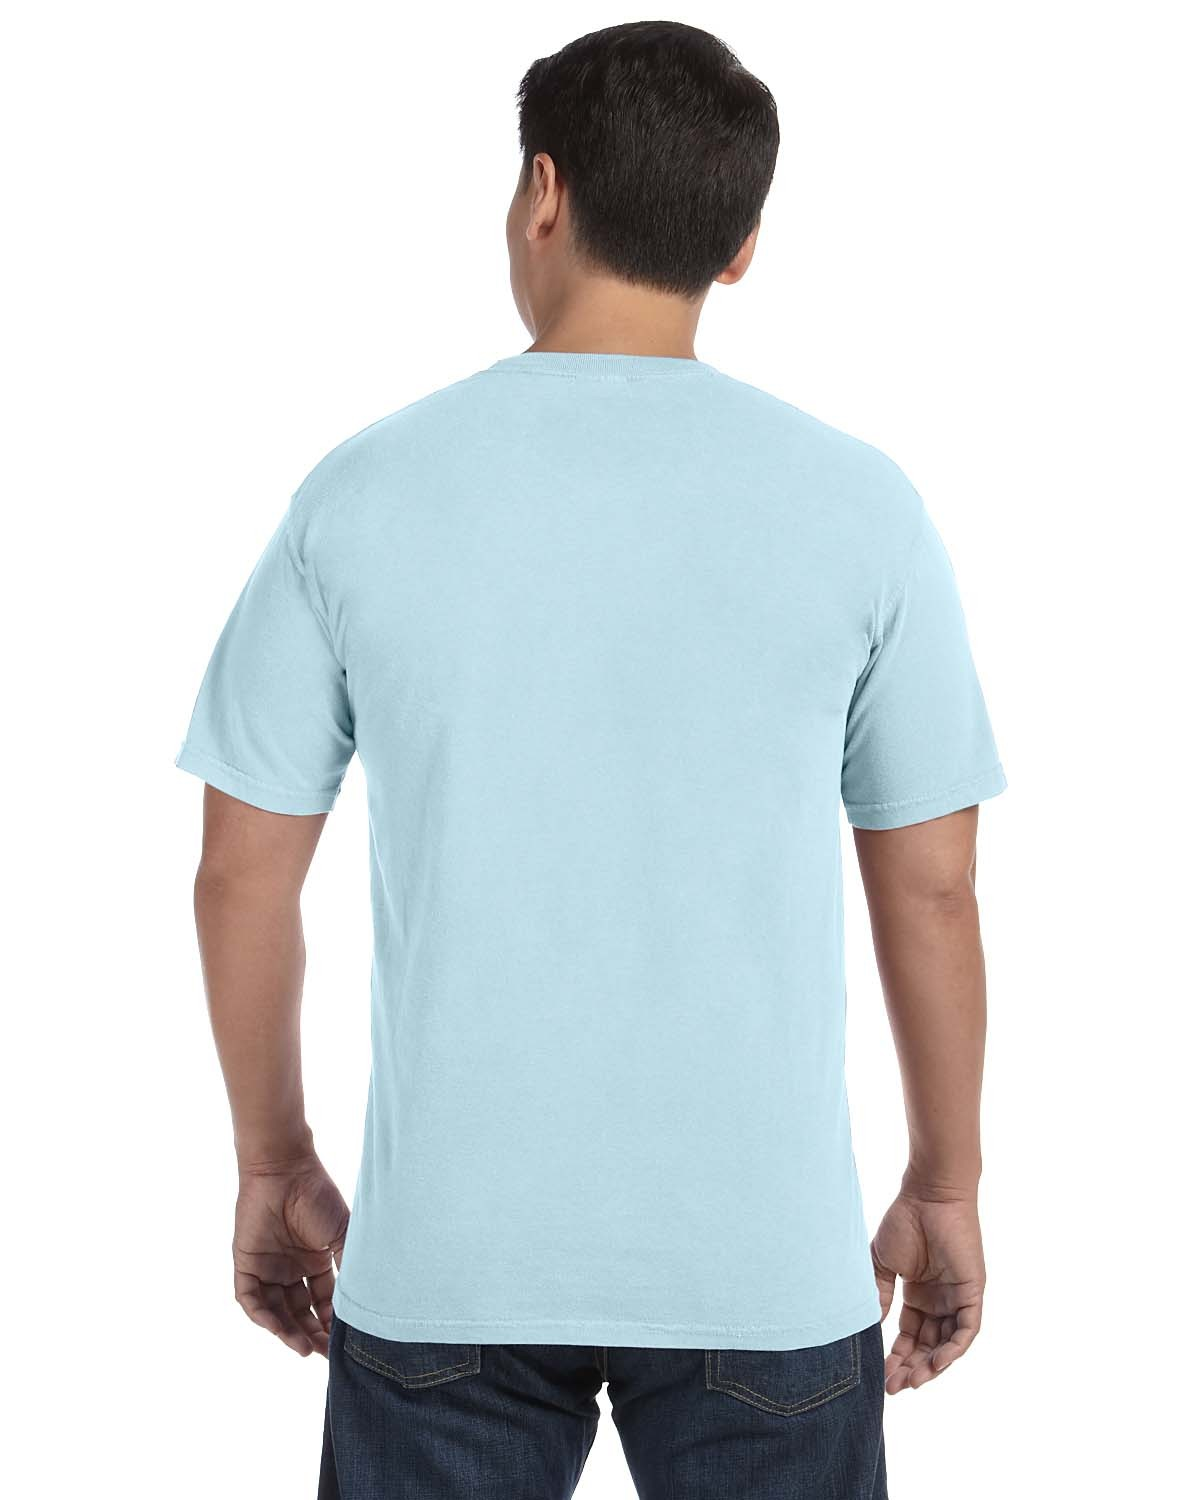 C1717 Comfort Colors CHAMBRAY